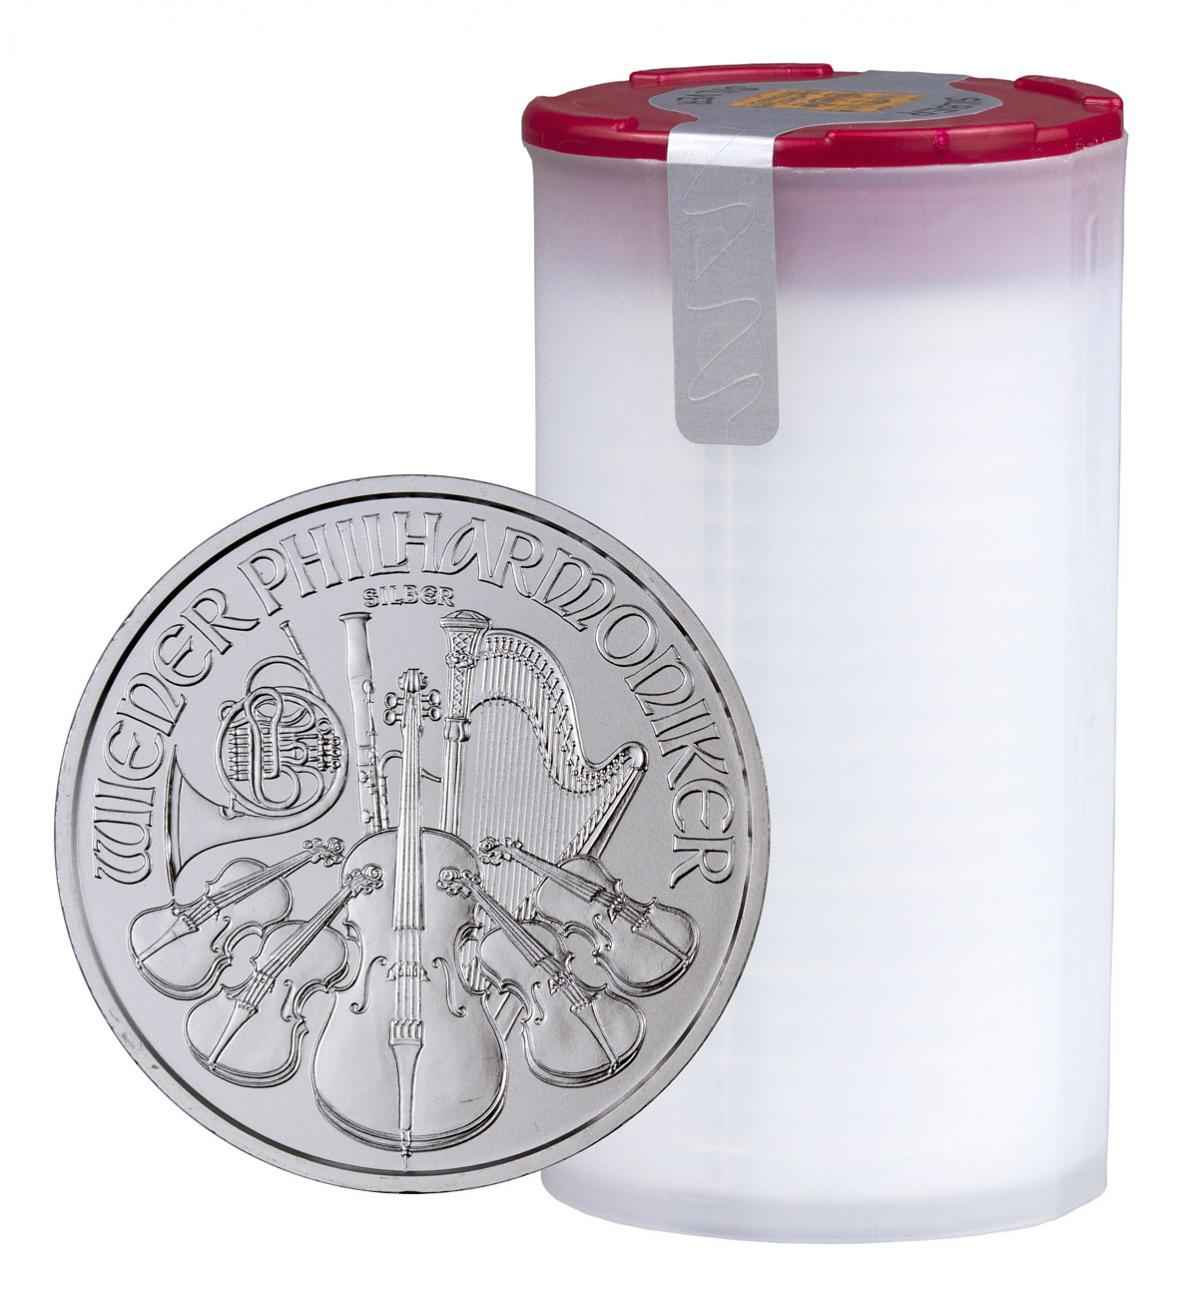 Roll of 20 - 2020 Austria 1 oz Silver Philharmonic €1.50 Coins GEM BU